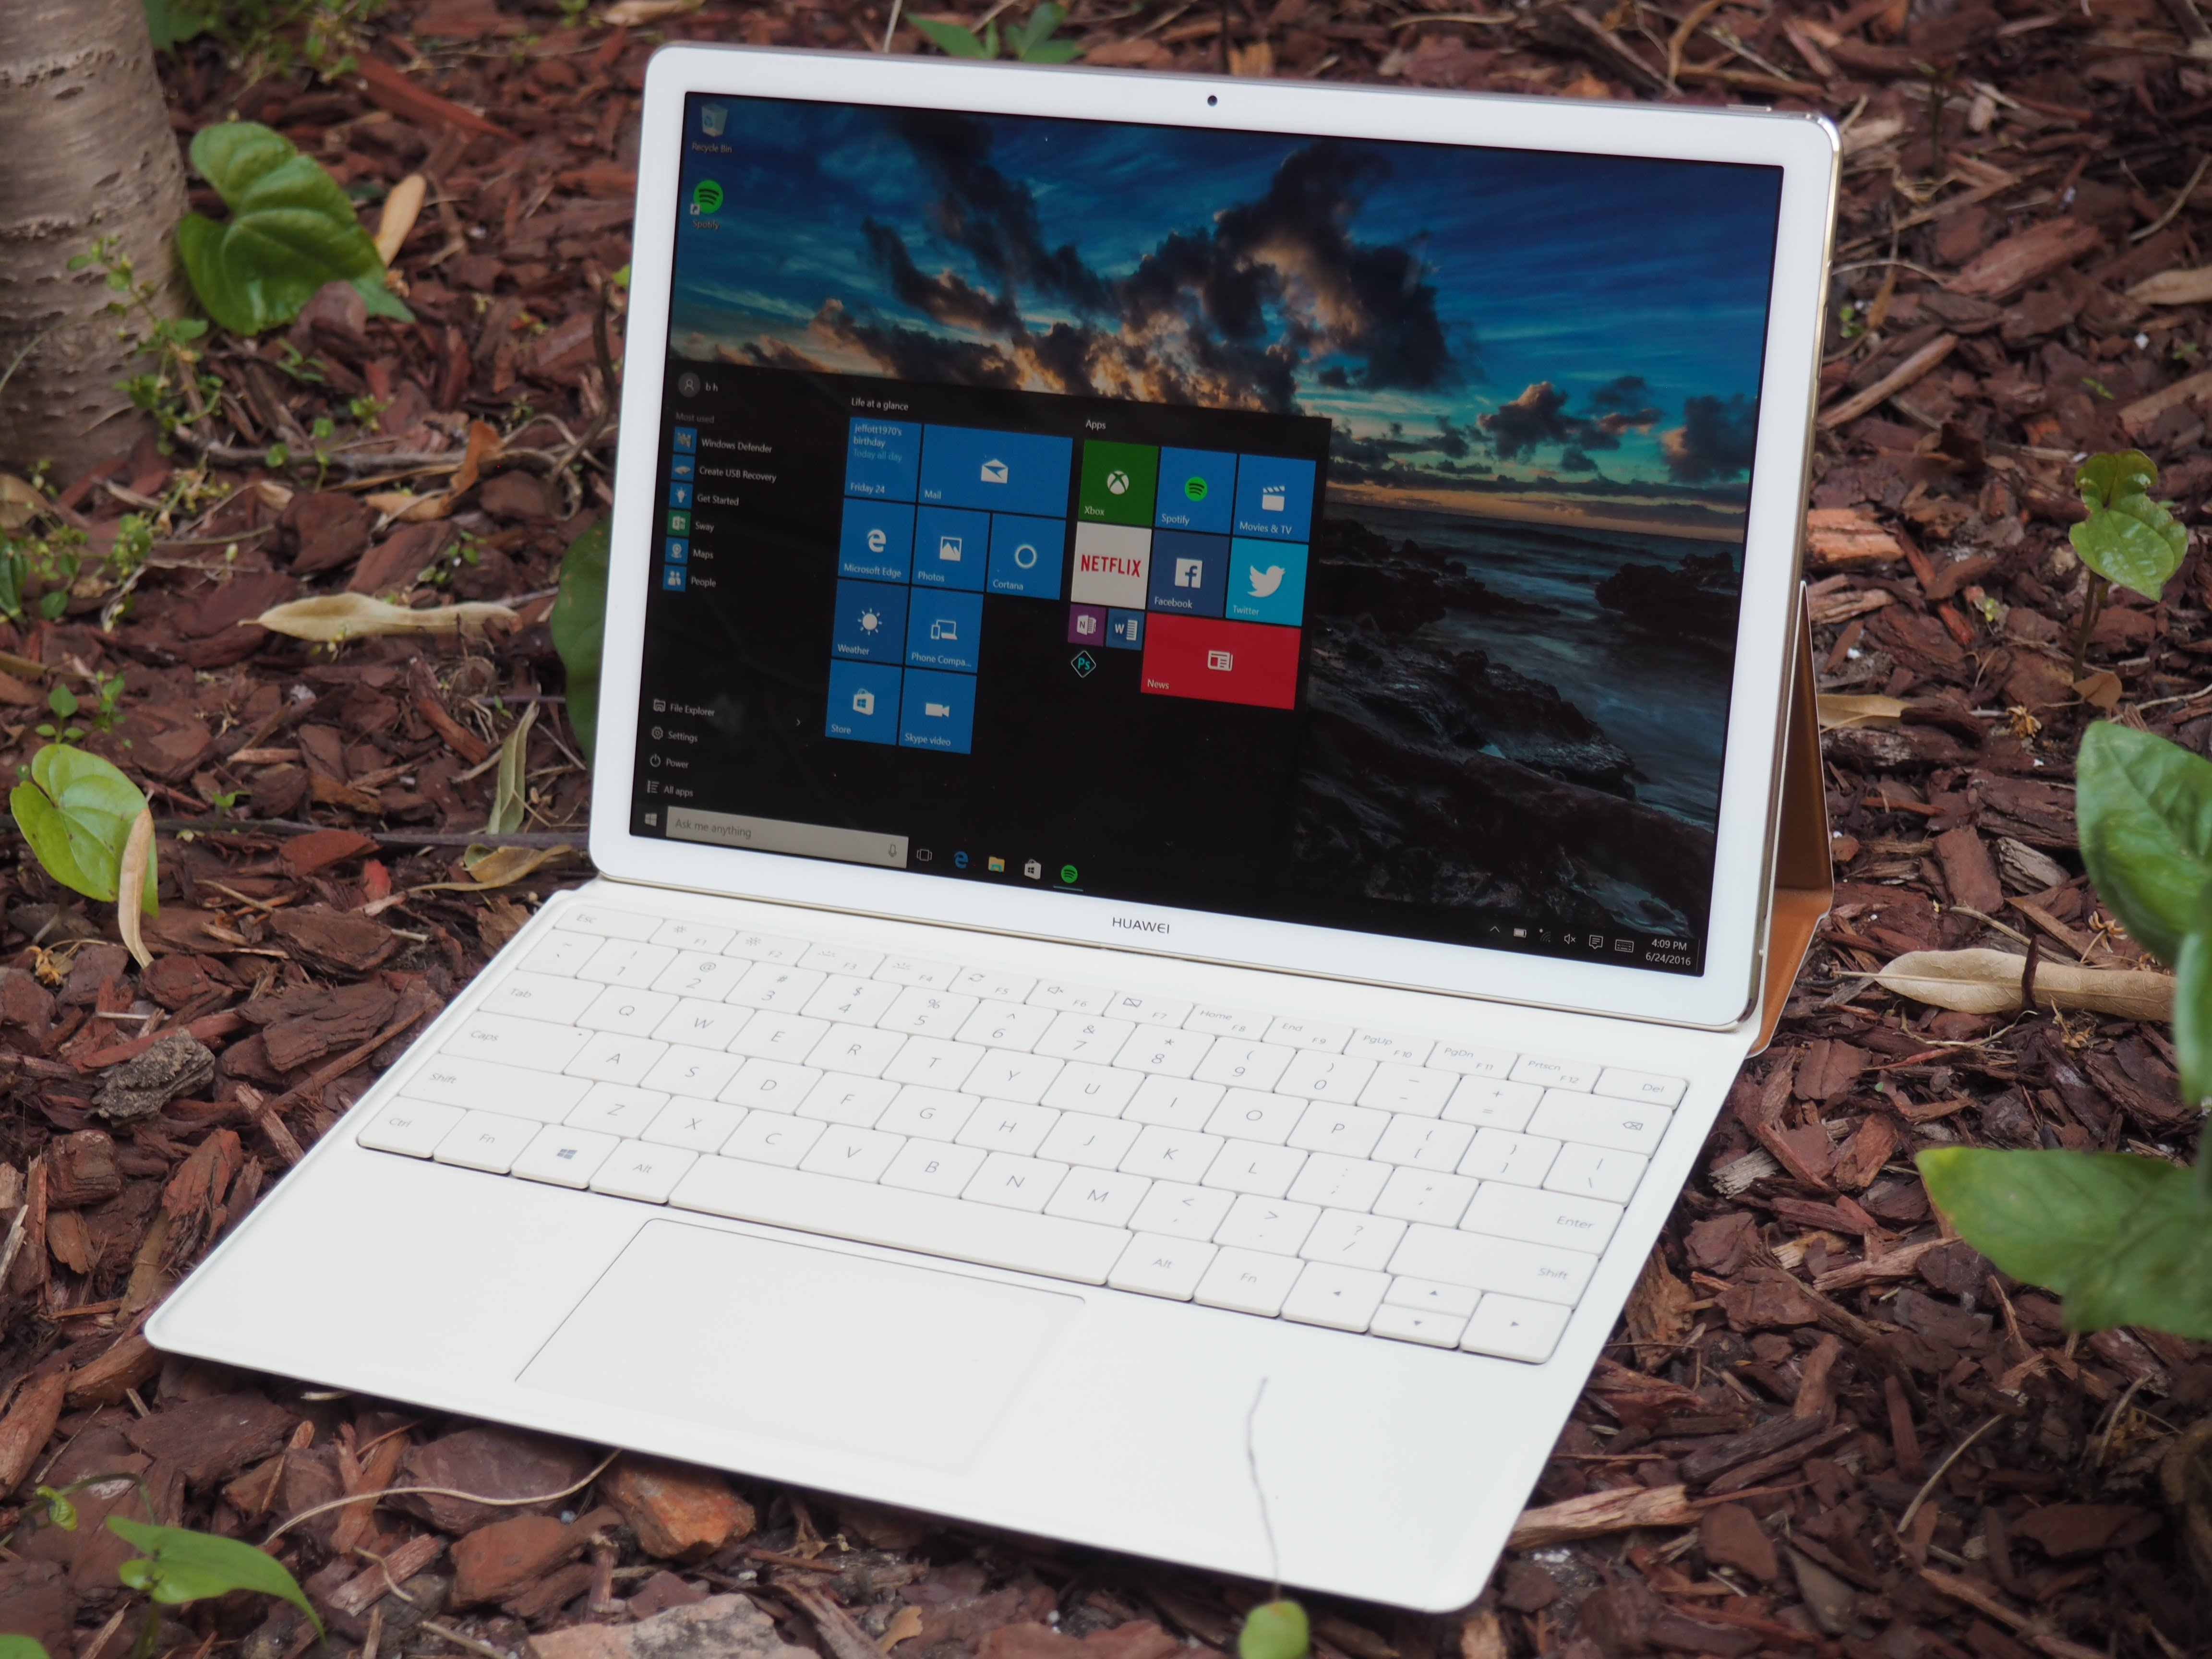 Huawei's MateBook is a solid 2-in-1 that still has some work to do